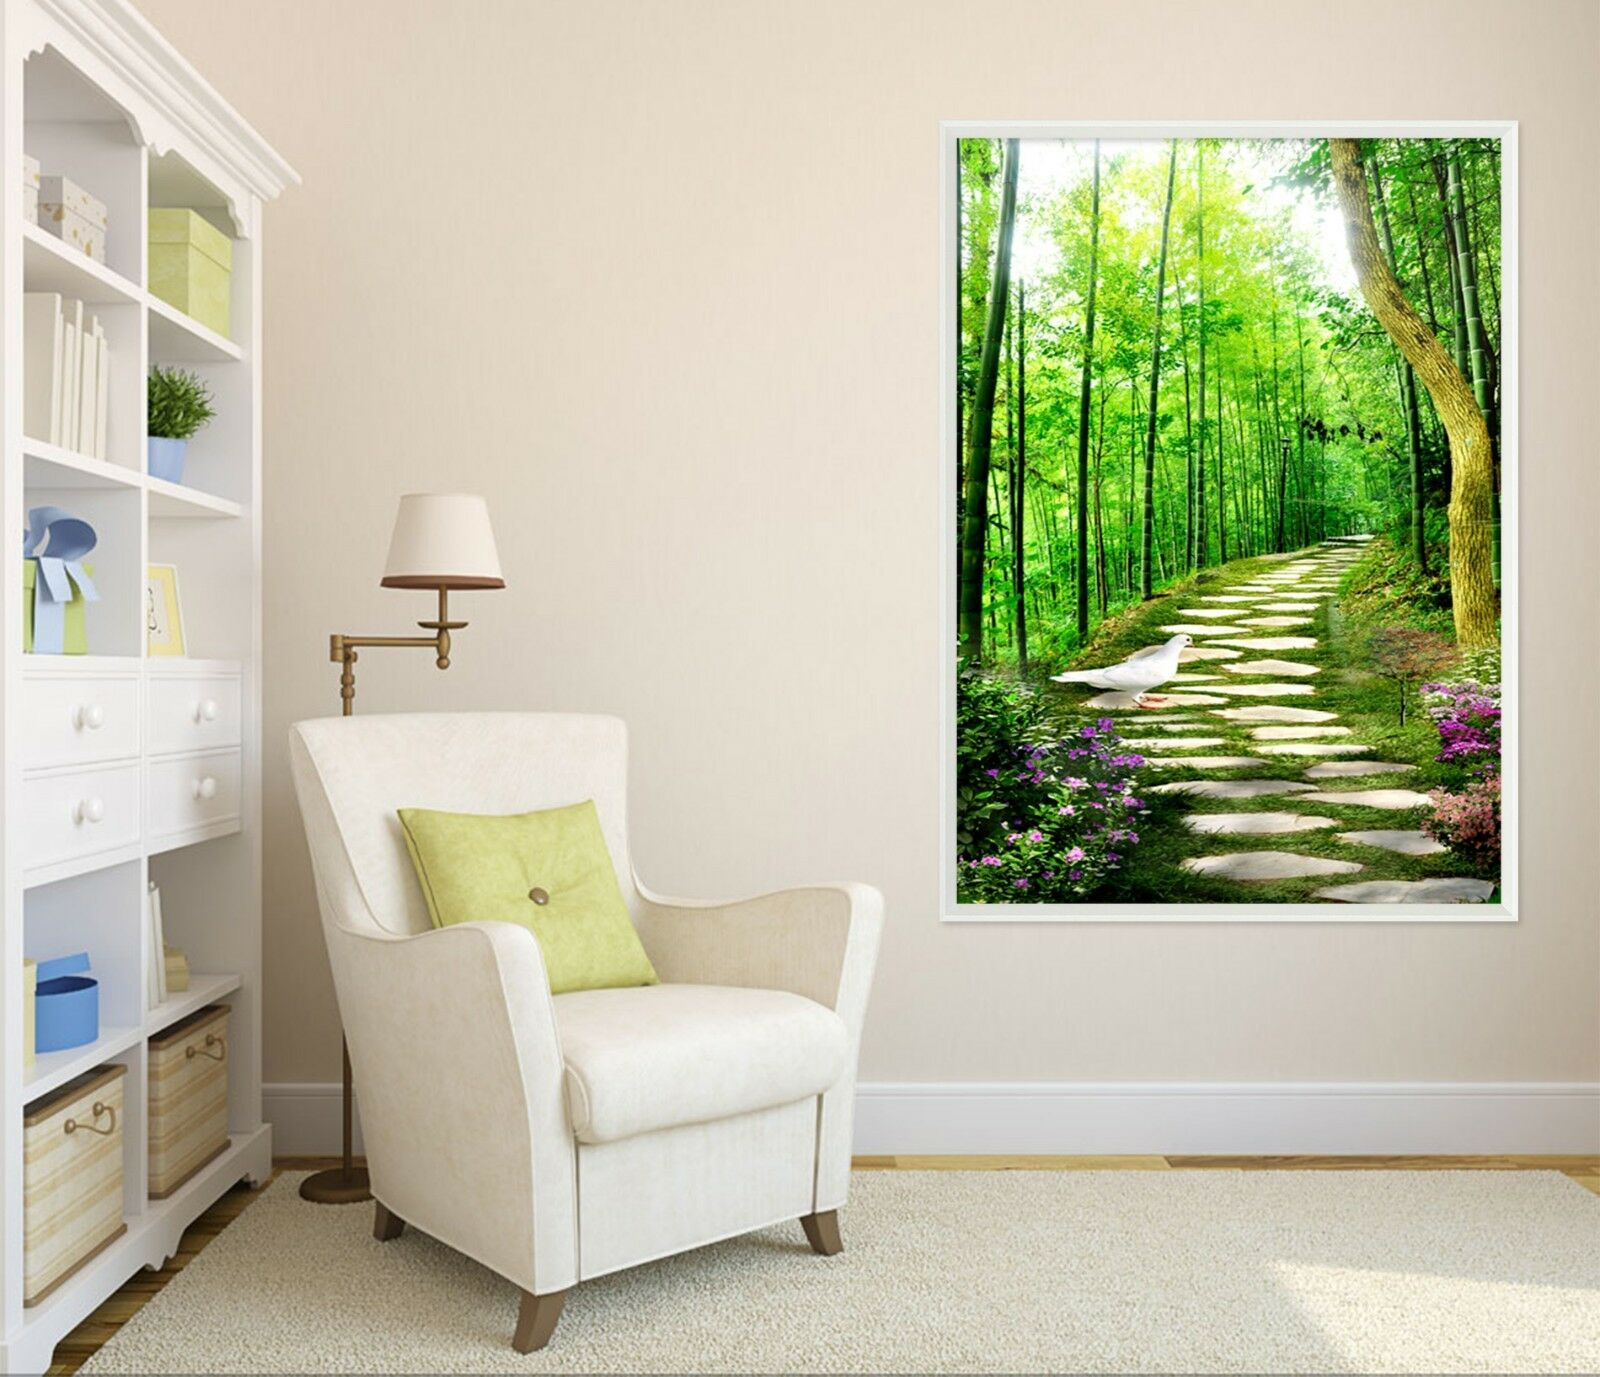 3D Bamboo Forest Stone Road 47 Framed Poster Home Decor Print Painting Art AJ